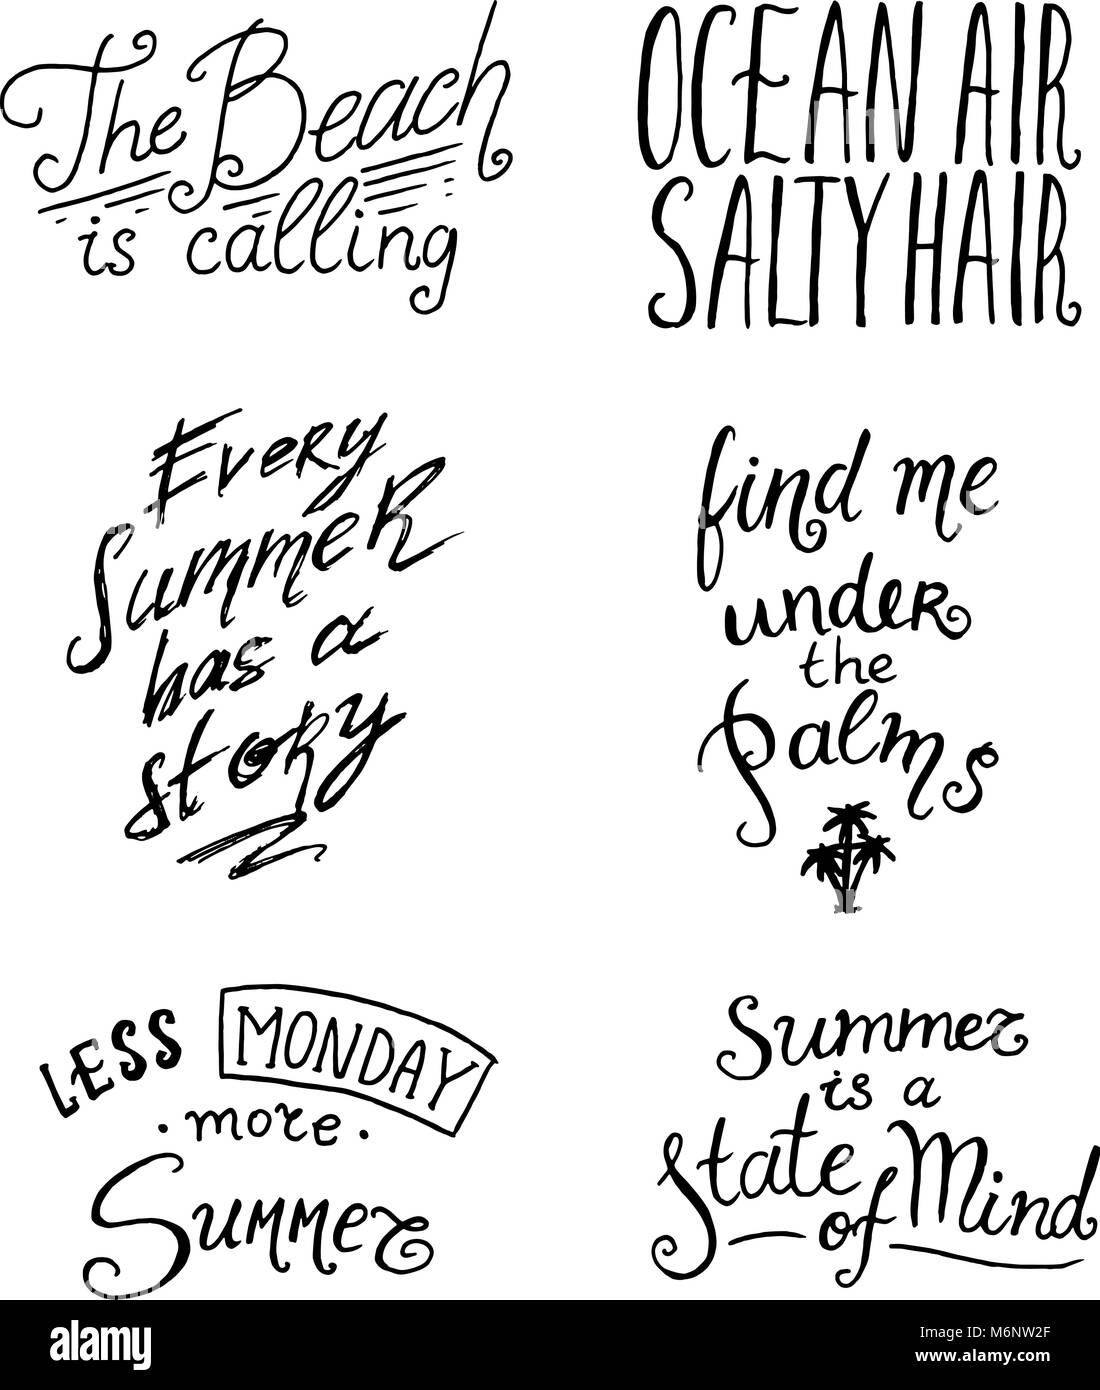 Summer Quotes Inspiration Travel And Journey Phrases Calligraphy Vector Illustration Hand Drawn Lettering Set Of Holidays Tropical Vacation